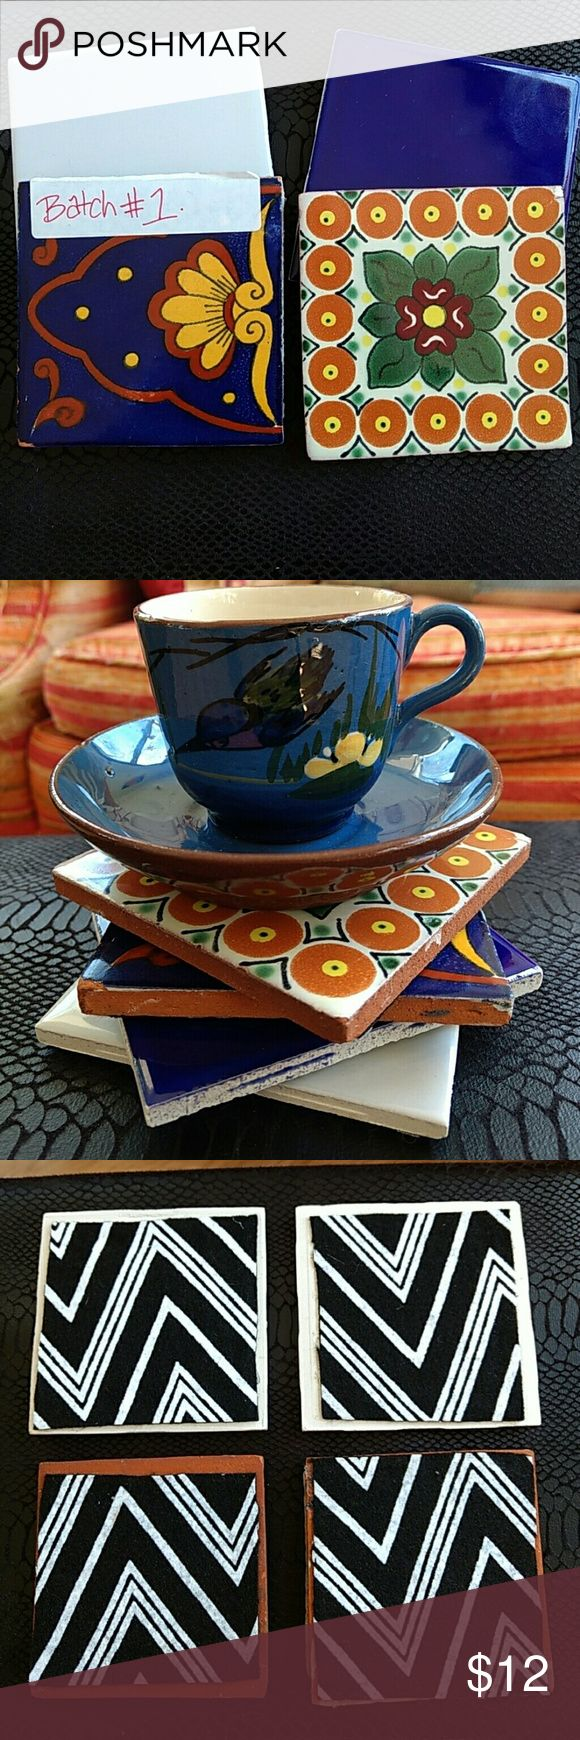 Tile coasters { teacup not included}  Coaster bundle includes:  *2- random hand painted traditional talavera Mexican tiles.   *2- white and blue tiles  *Felt backing so they don't scratch your surfaces. Other